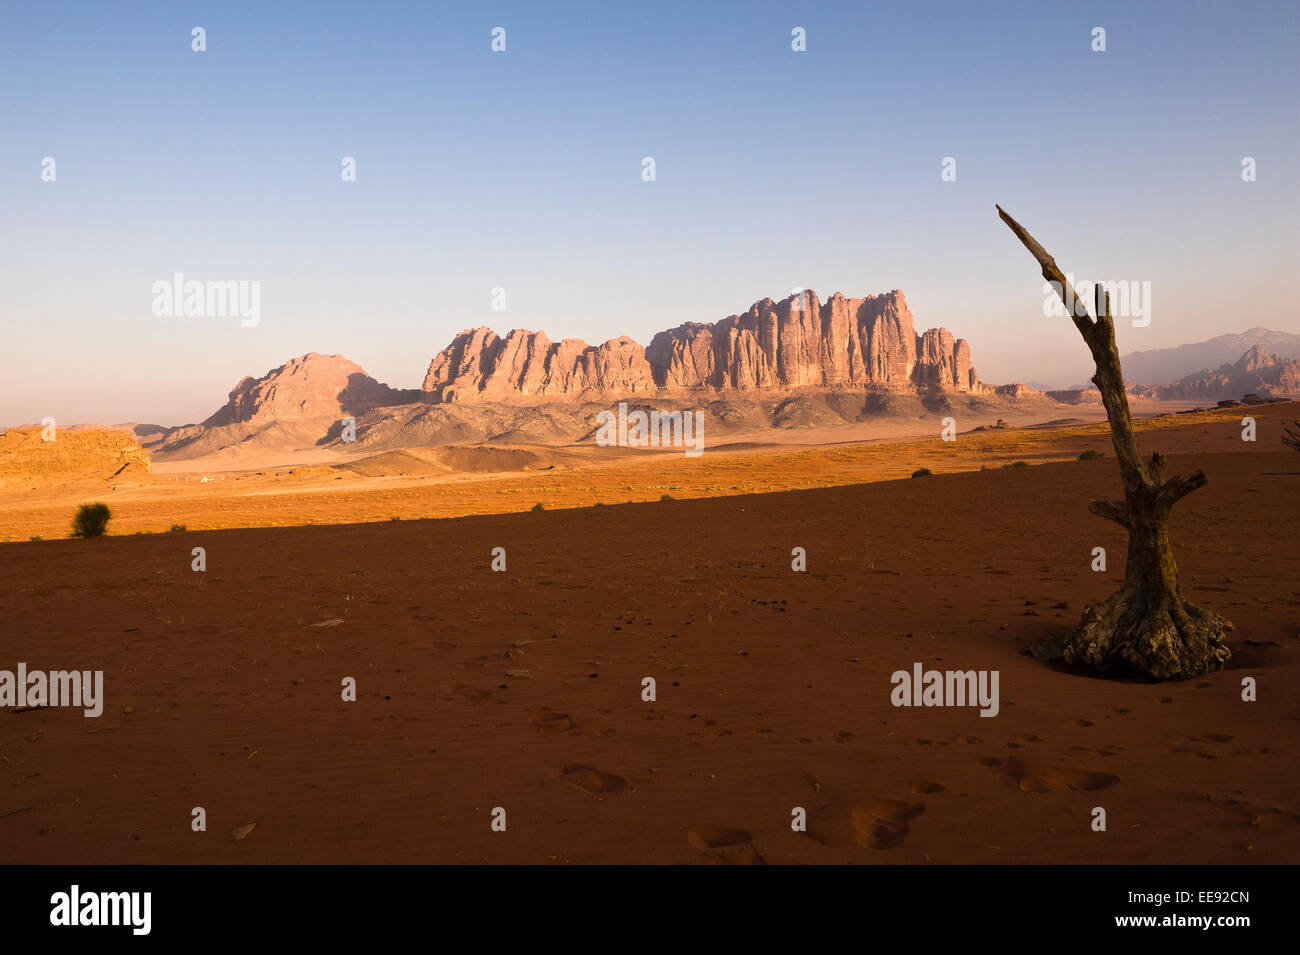 A view of Jebel Qattar, which is home to the most diversified wildlife in Wadi Rum National Park. - Stock Image